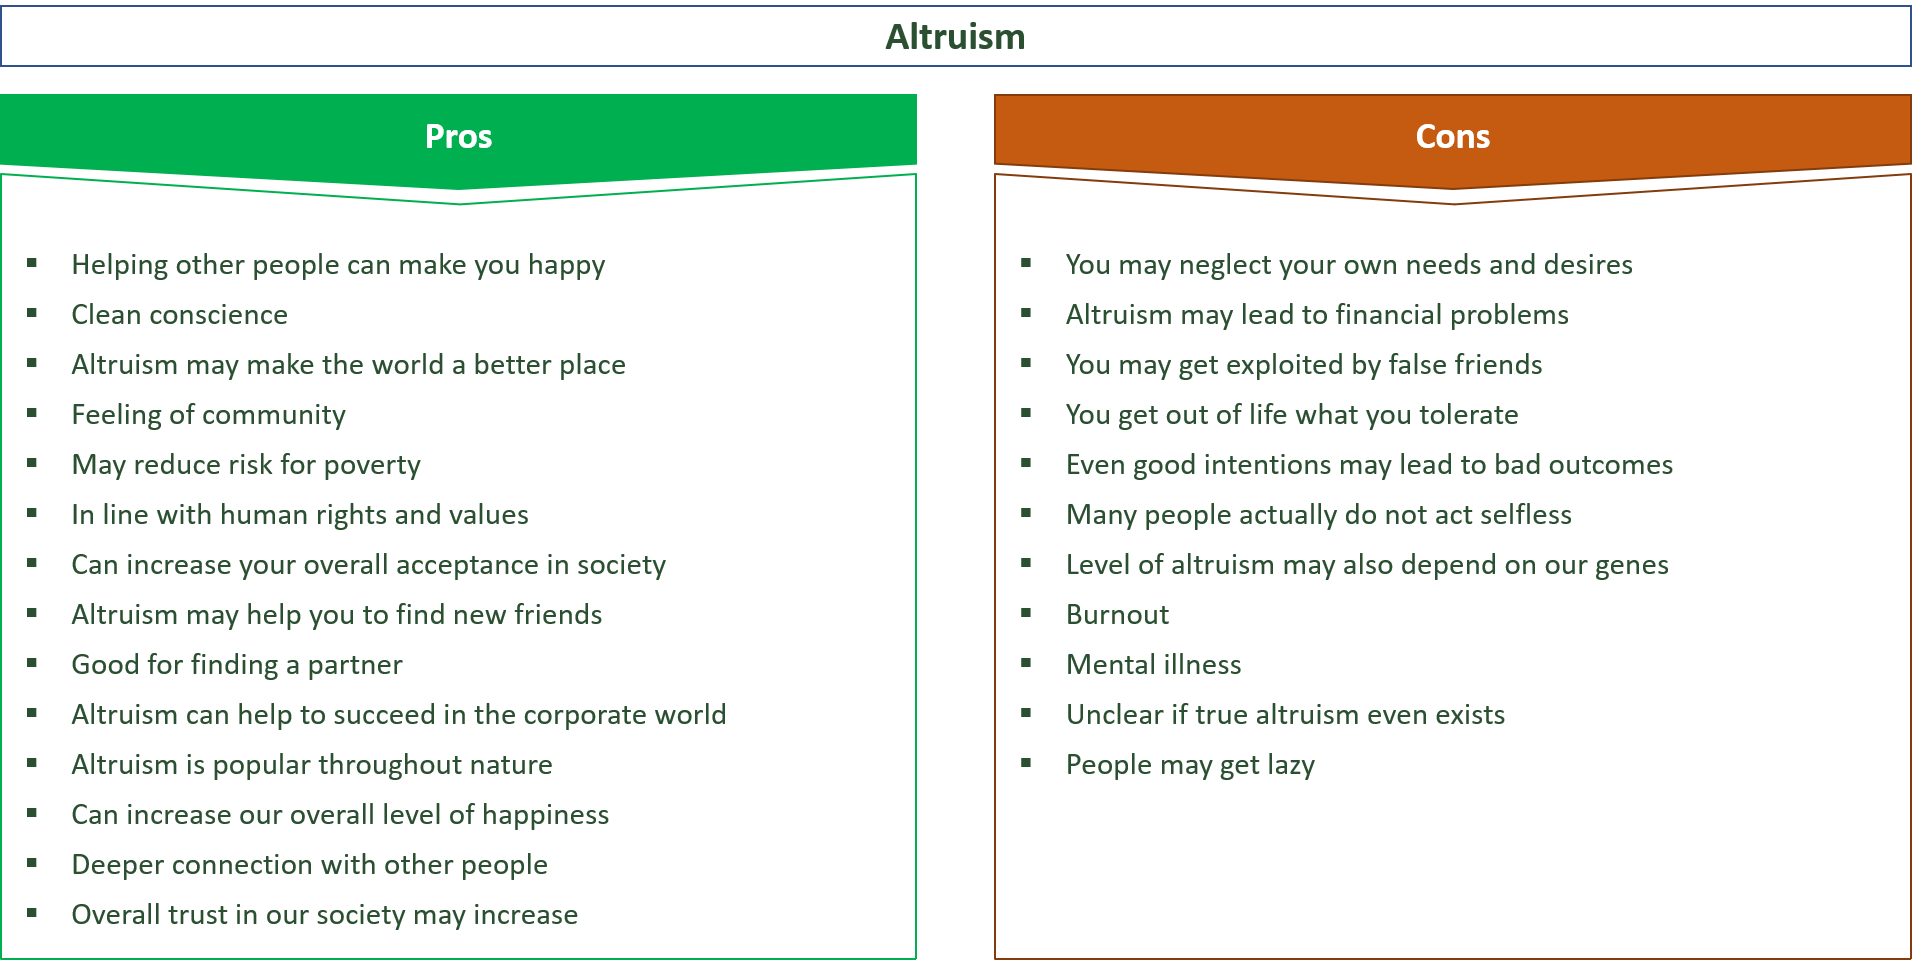 advantages and disadvantages of altruism